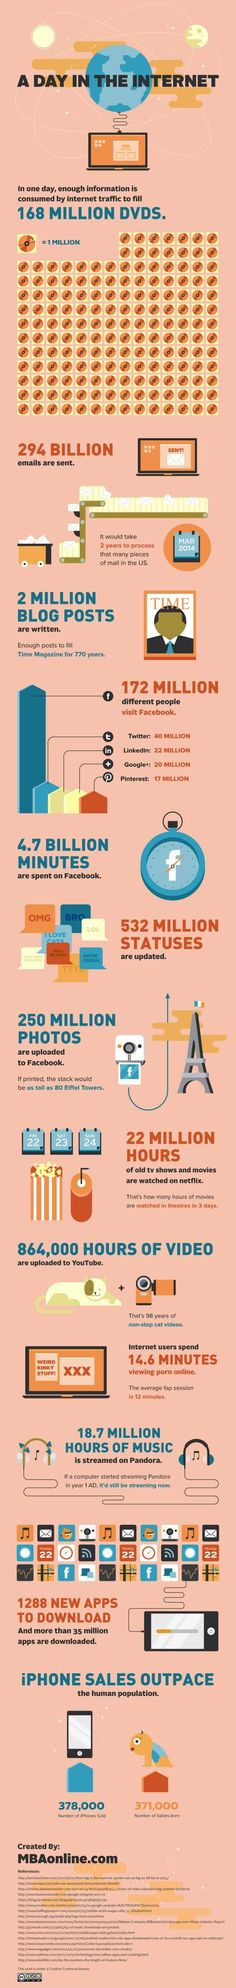 A Day in the Internet #infographic #2012 #socialmedia